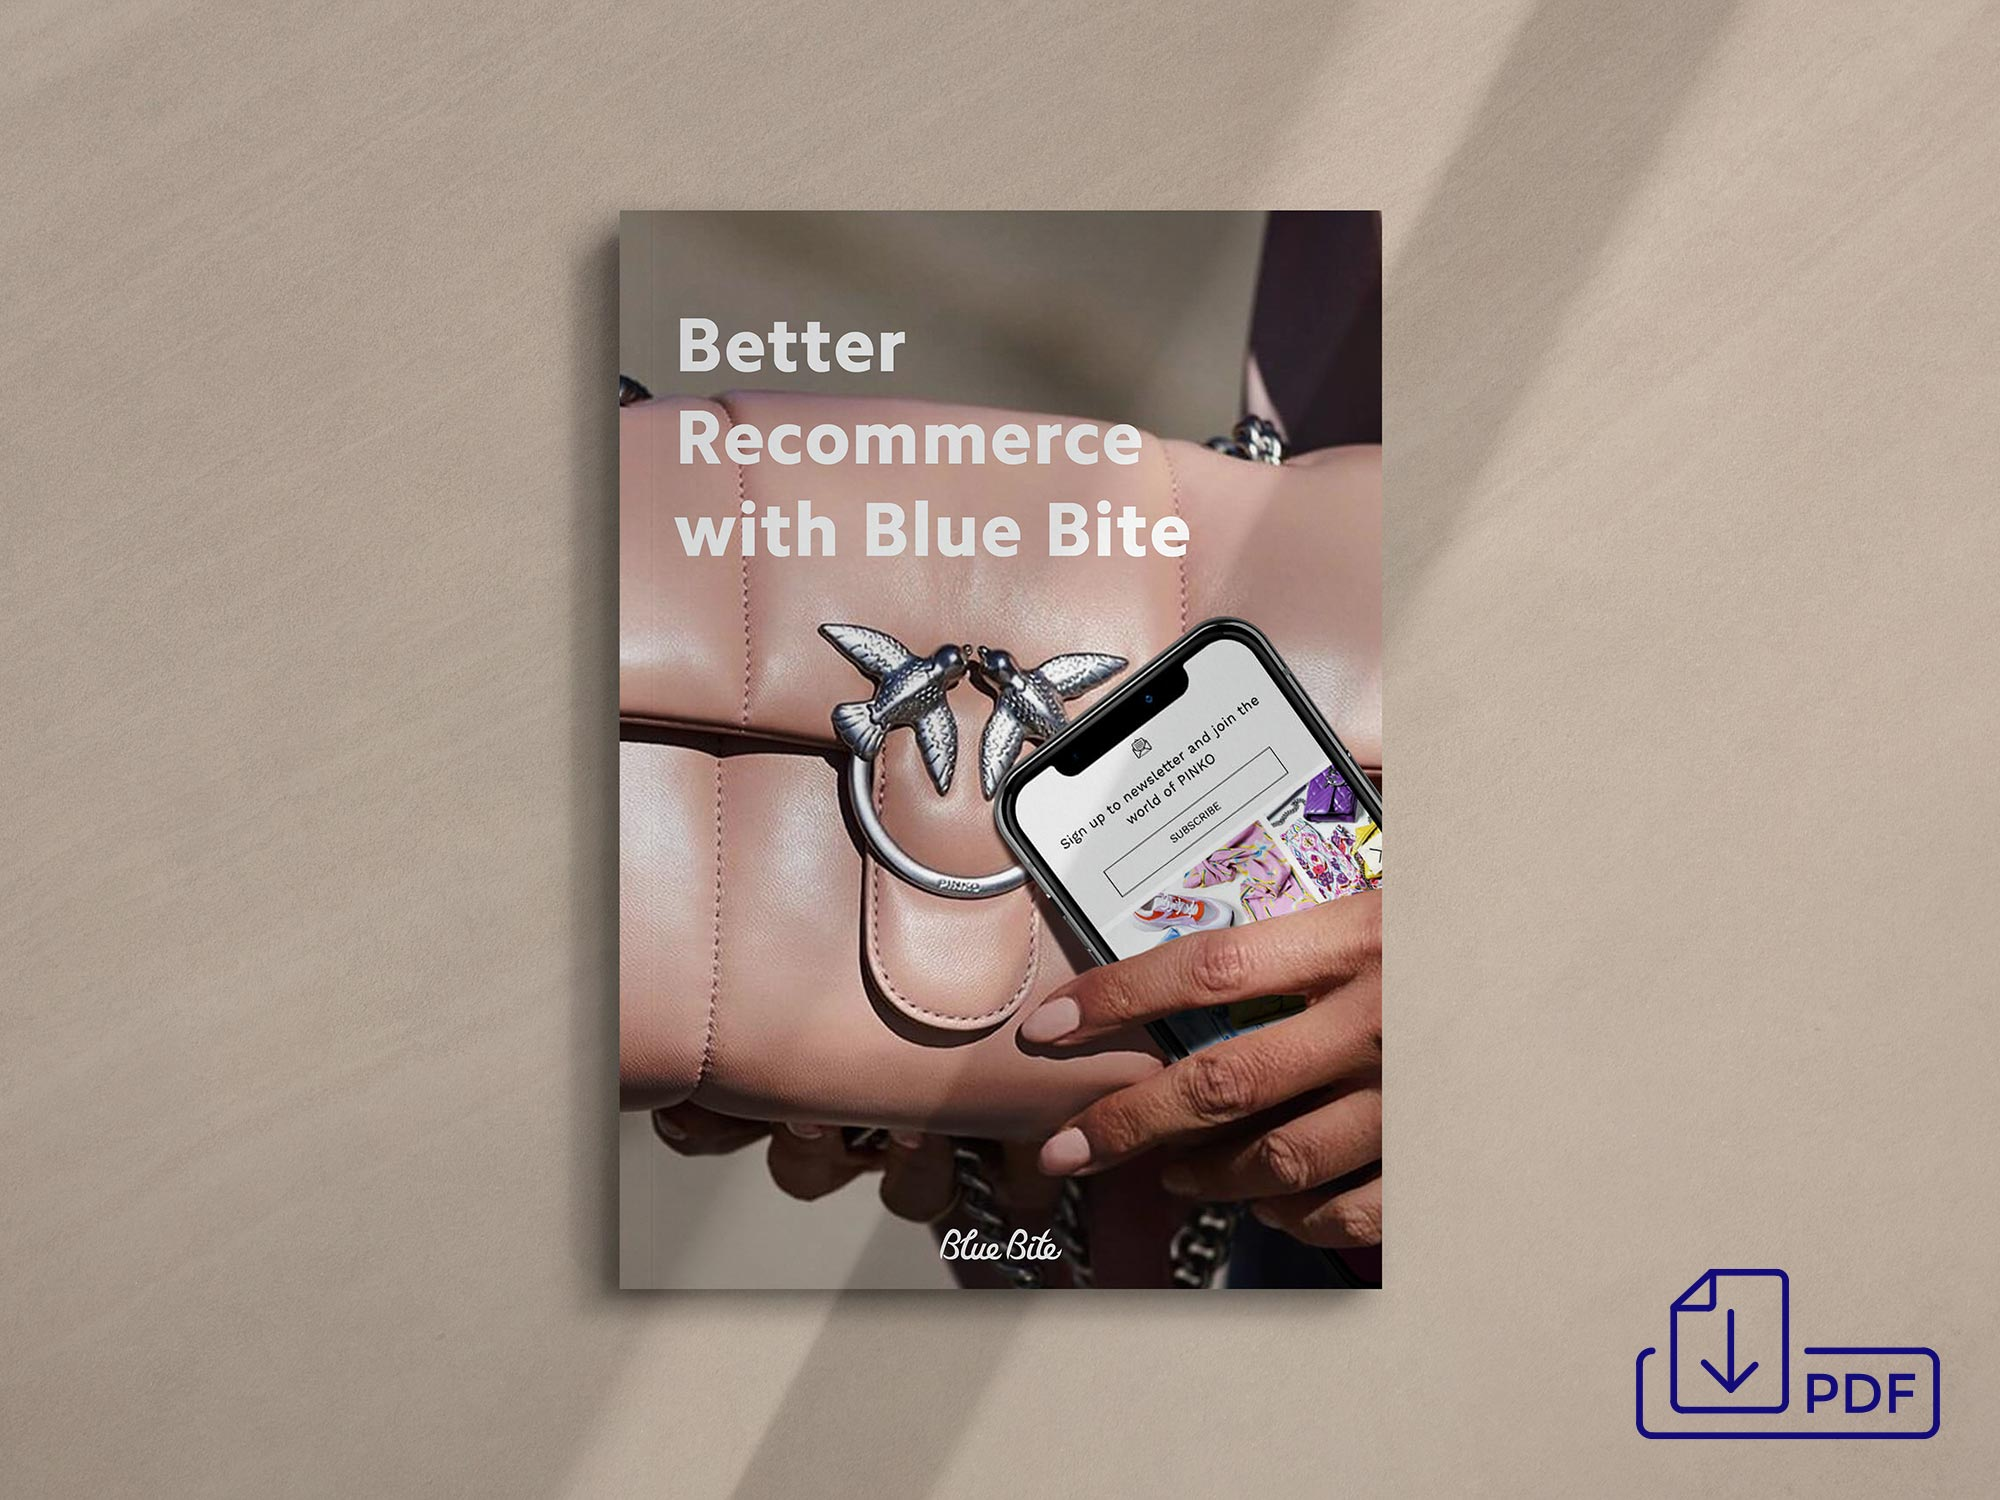 Get the Better Recommerce with Blue Bite PDF